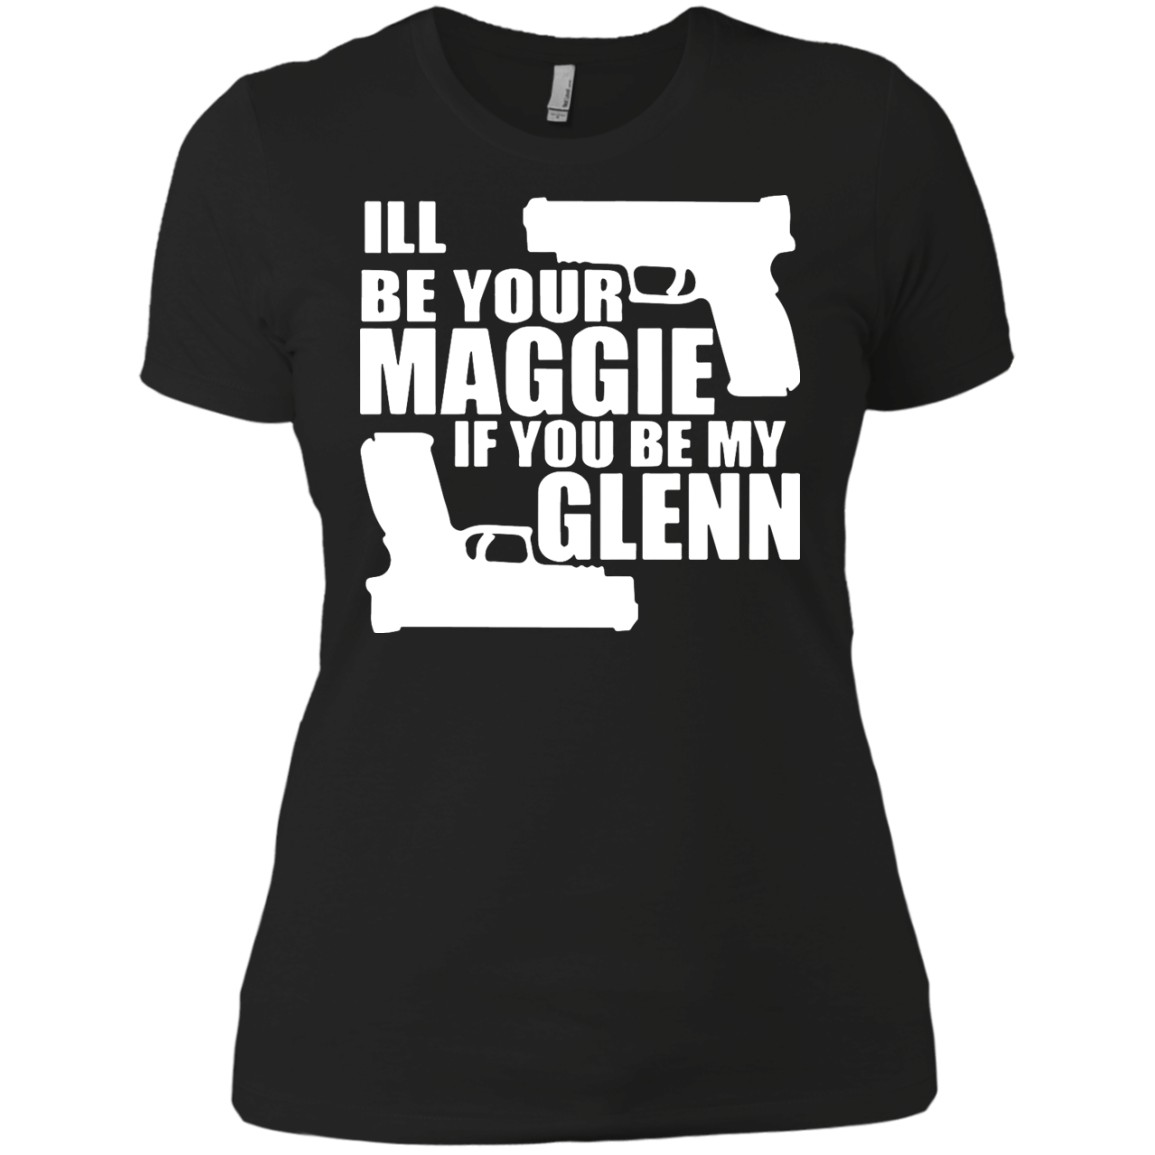 Maggie And Glenn The Walking Dead T shirt Hoodies Walking Dead Clothing T shirts And Merchandise